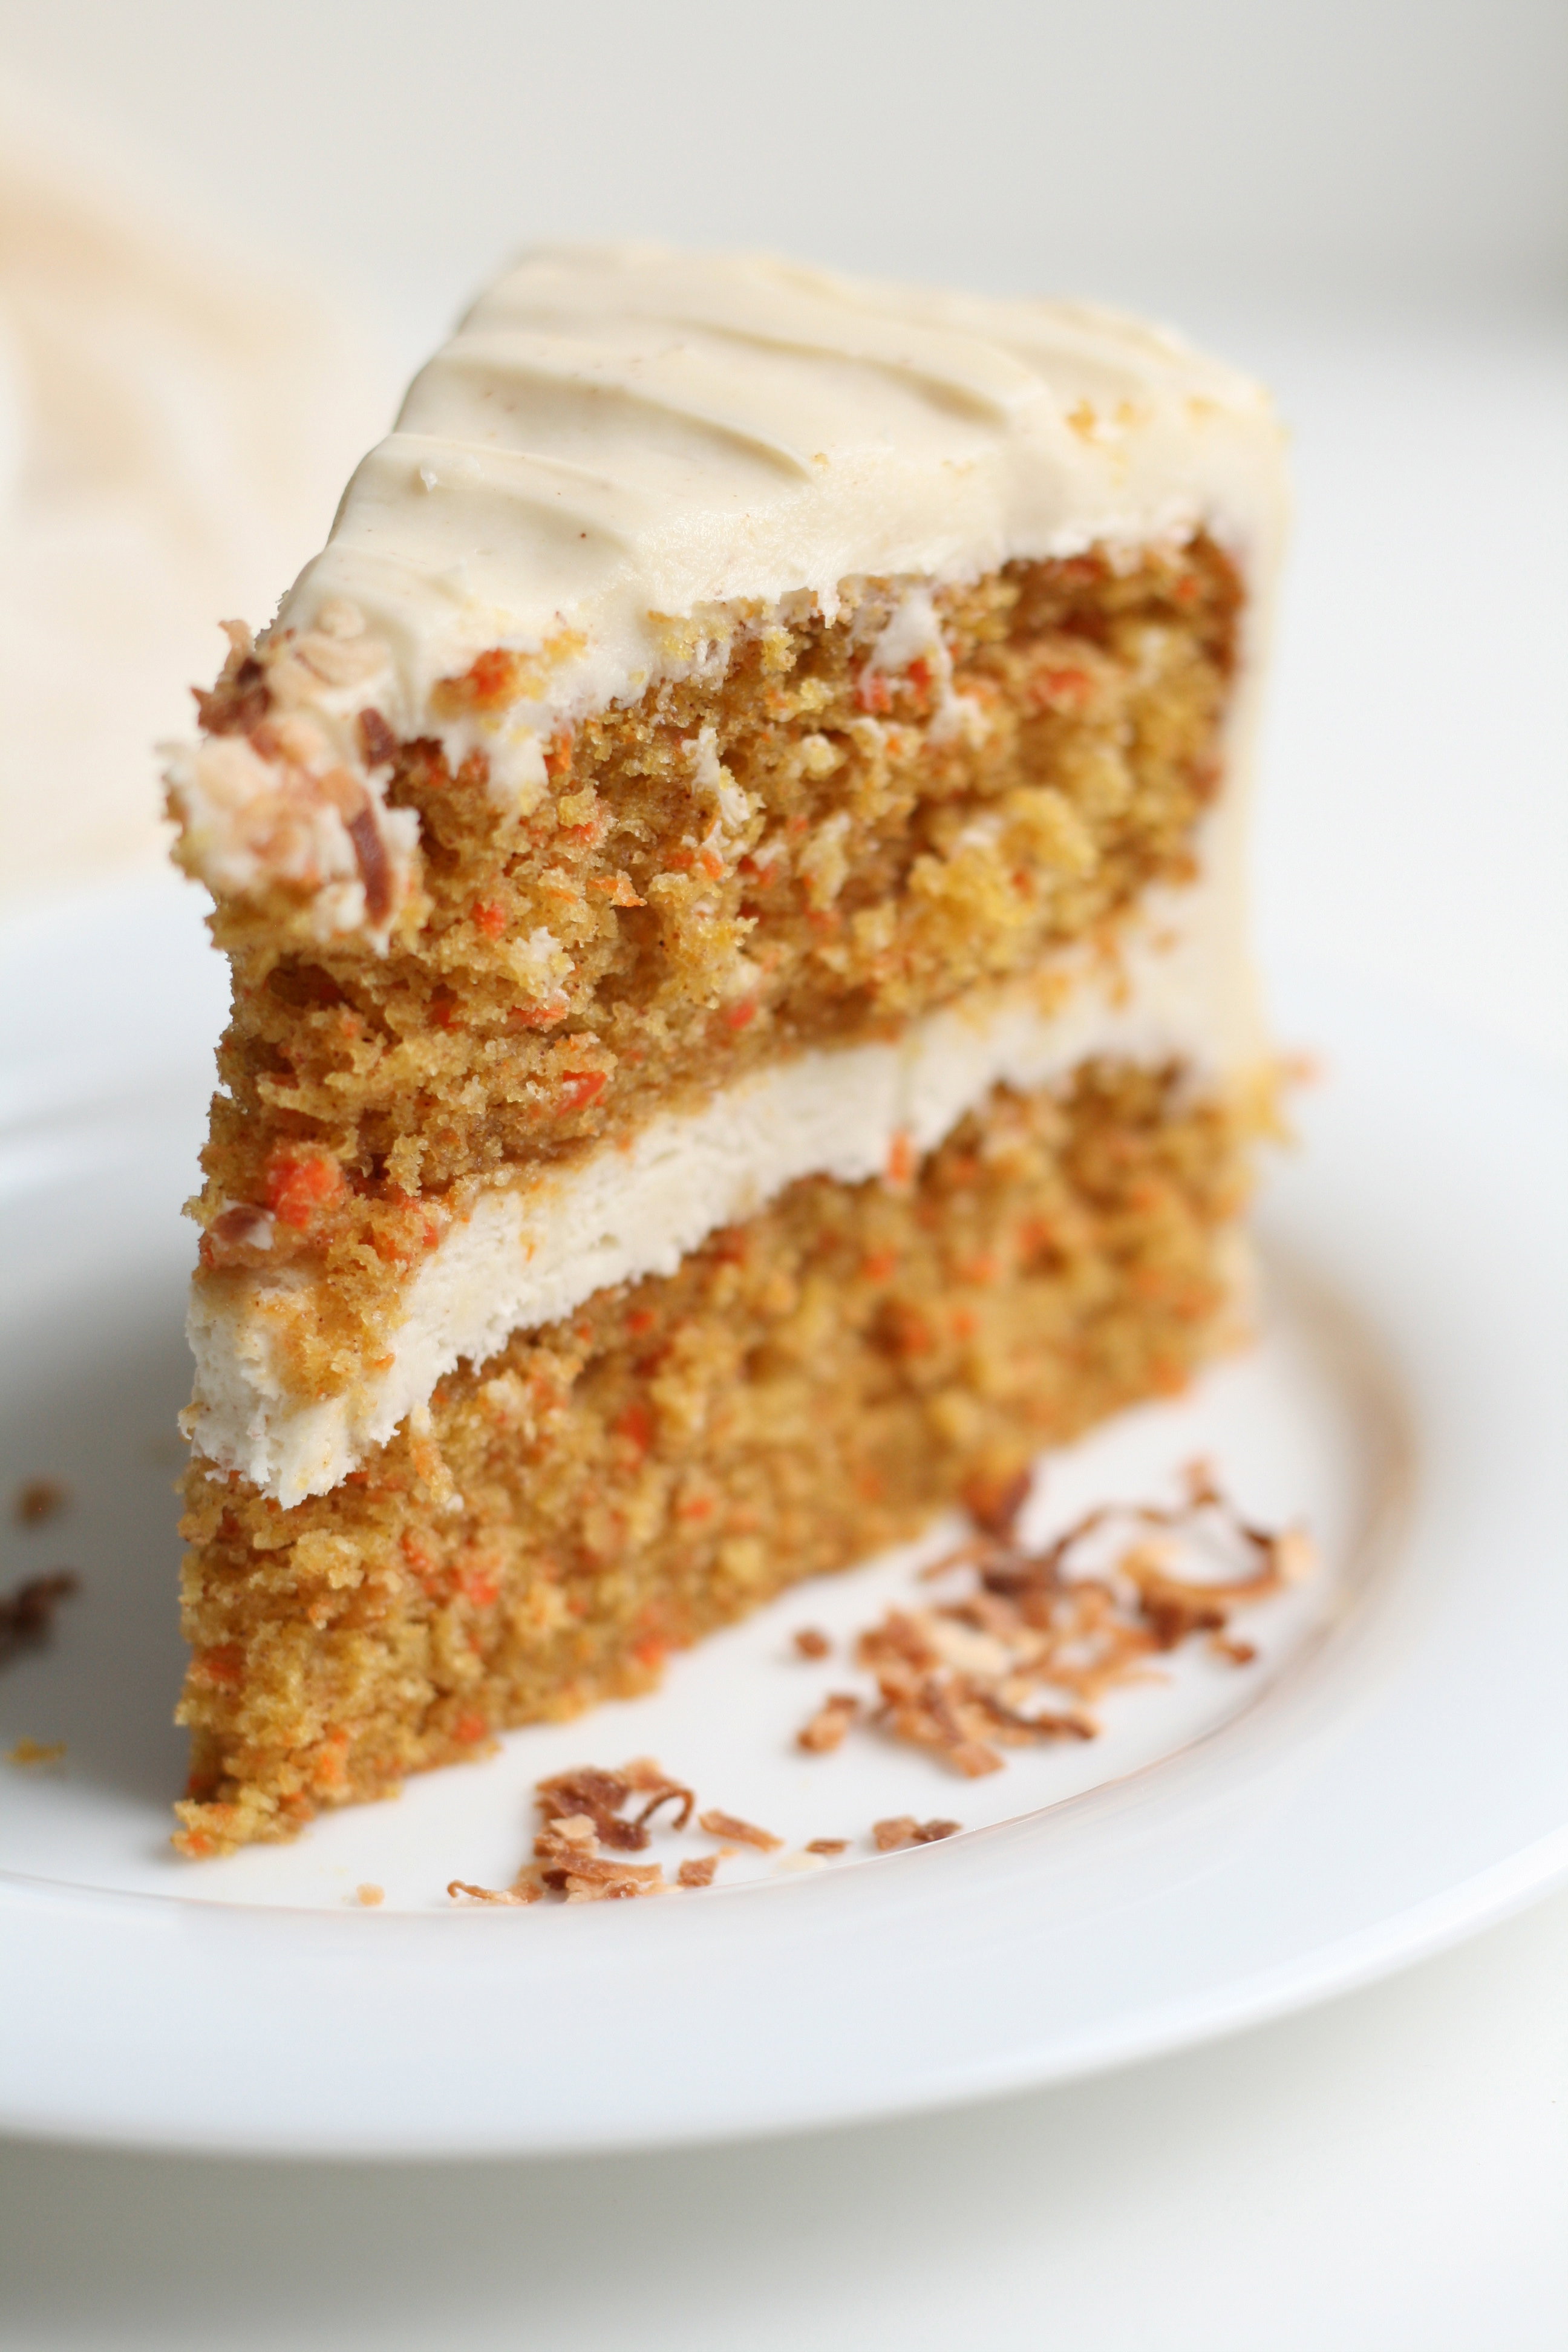 Carrot Cake - The Fauxmartha